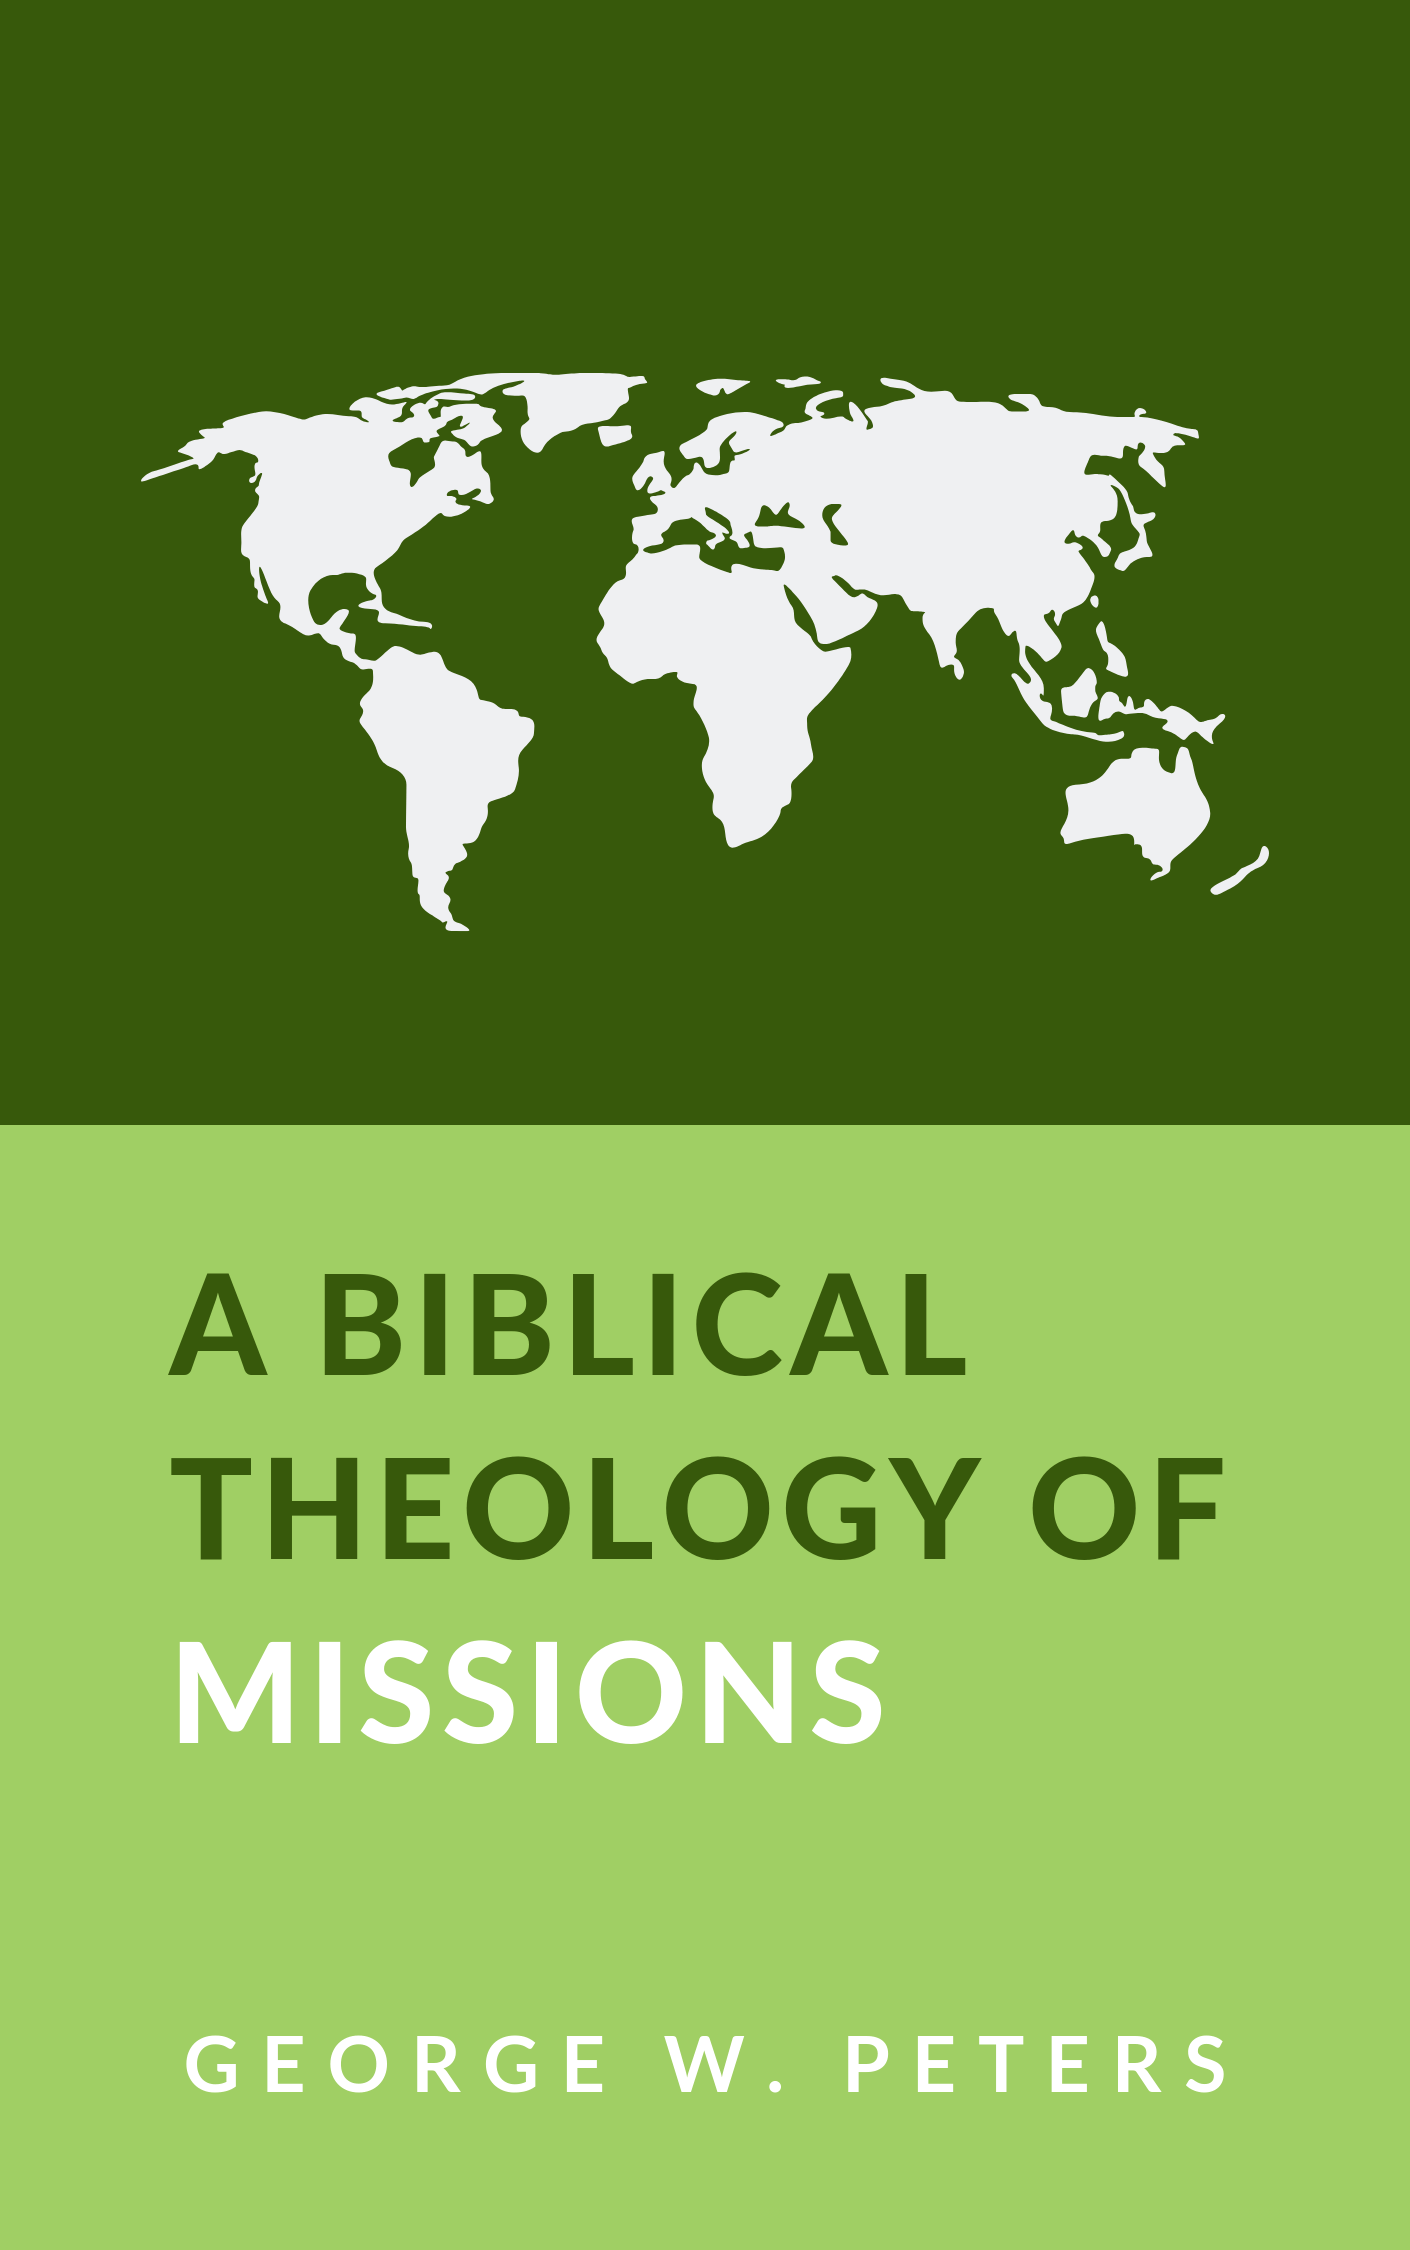 theology of missions paper